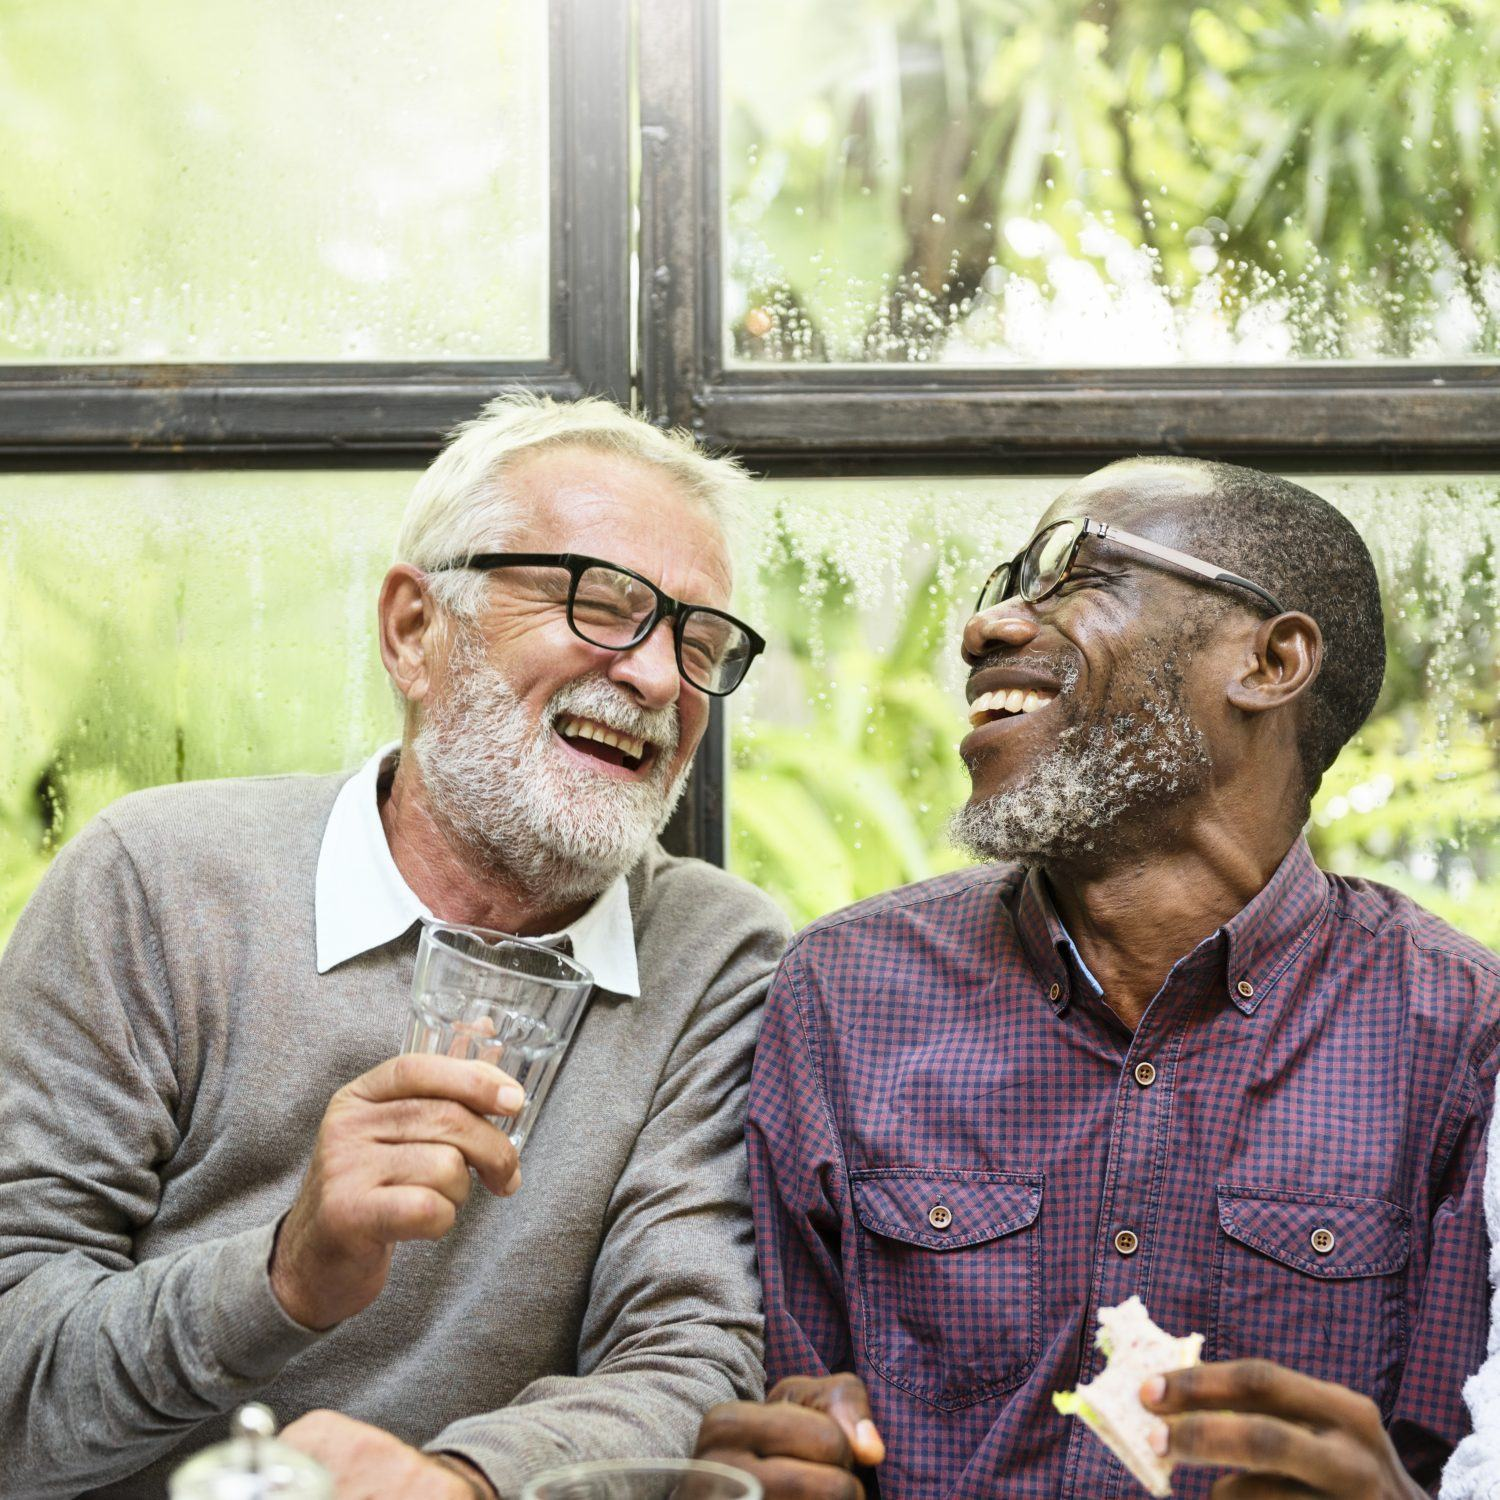 Two elderly men having fun and laughing which will benefit their health